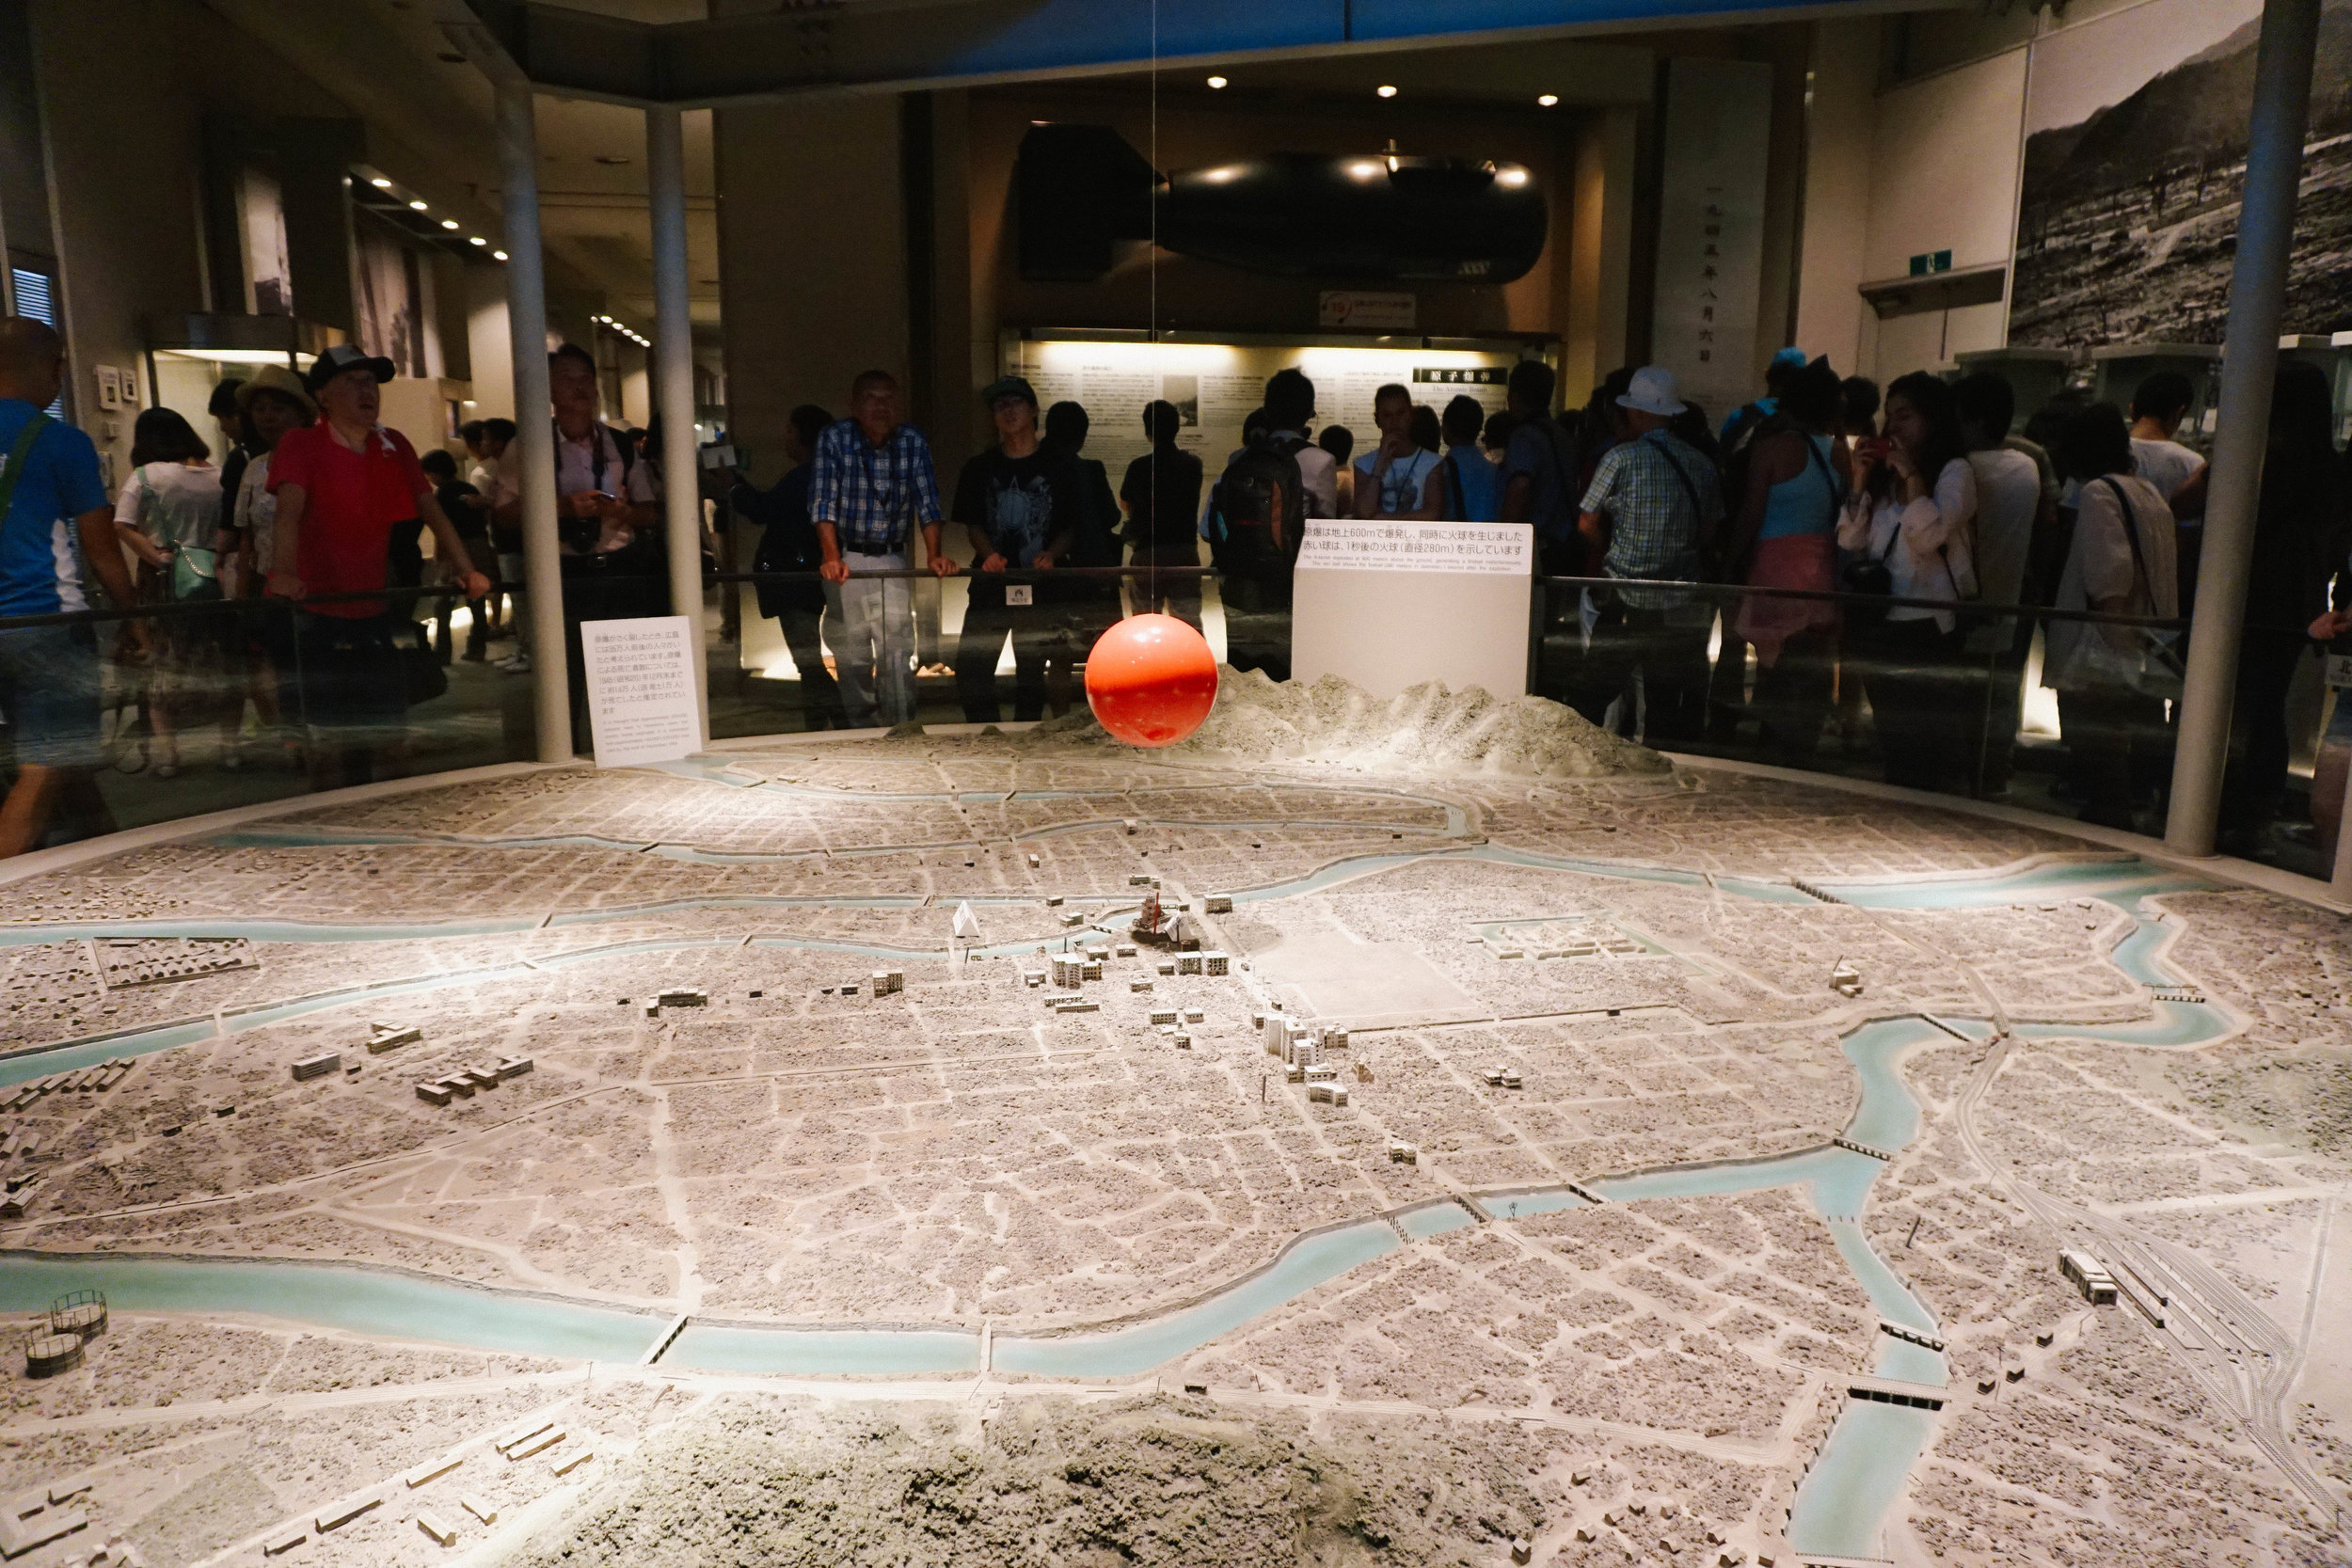 A rendering of the atomic bomb  — depicted as the red ball  — over Hiroshima.